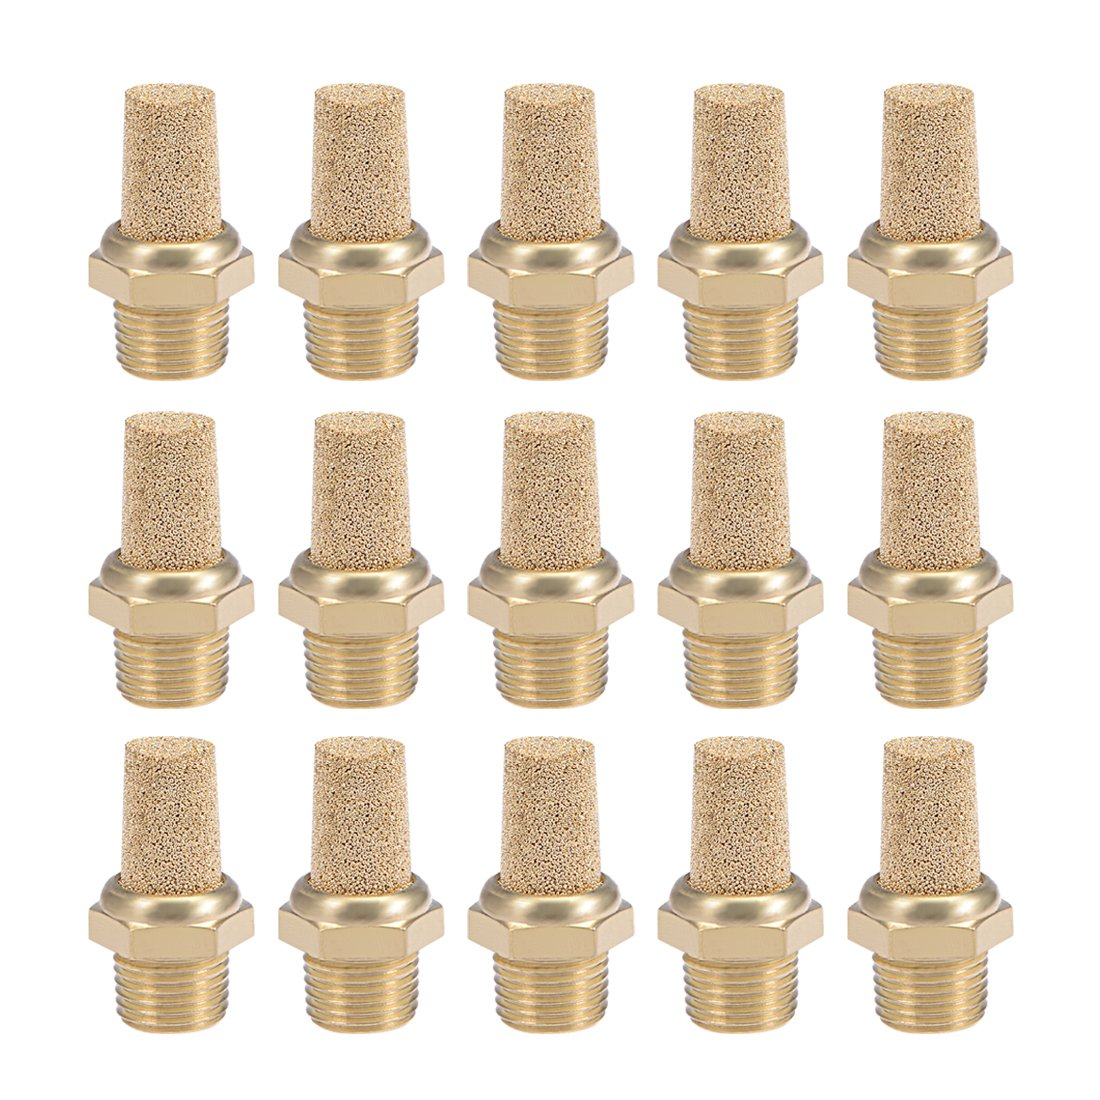 uxcell 1/8 PT Sintered Bronze Exhaust Muffler with Brass Body Protruding 15pcs